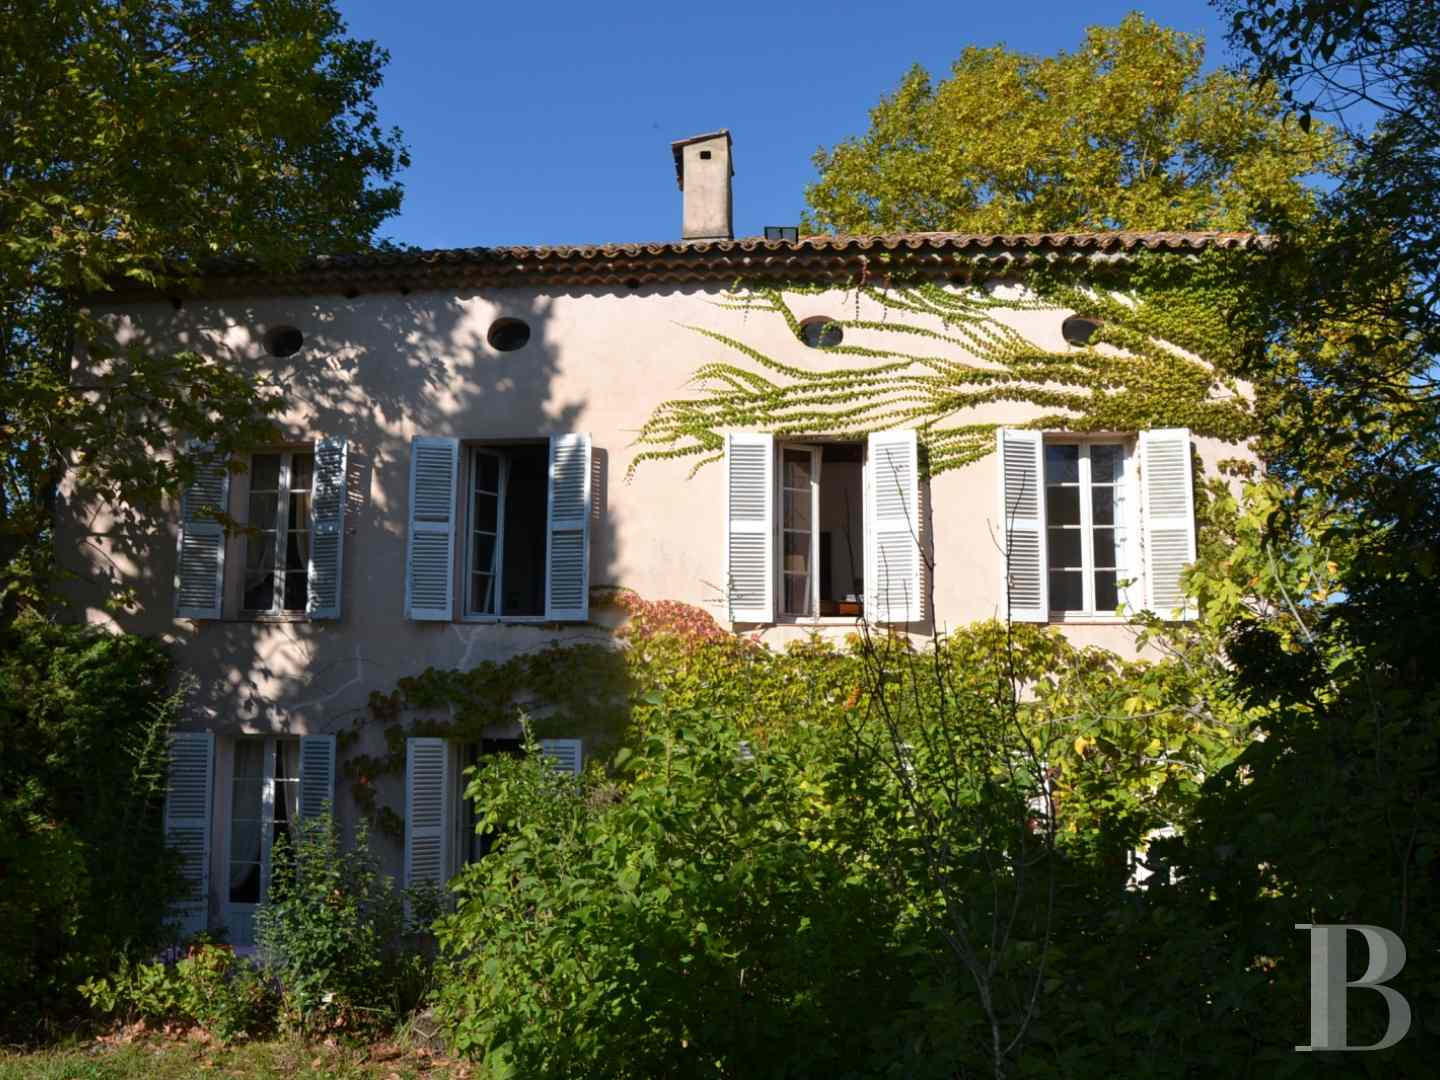 character properties France provence cote dazur character houses - 1 zoom